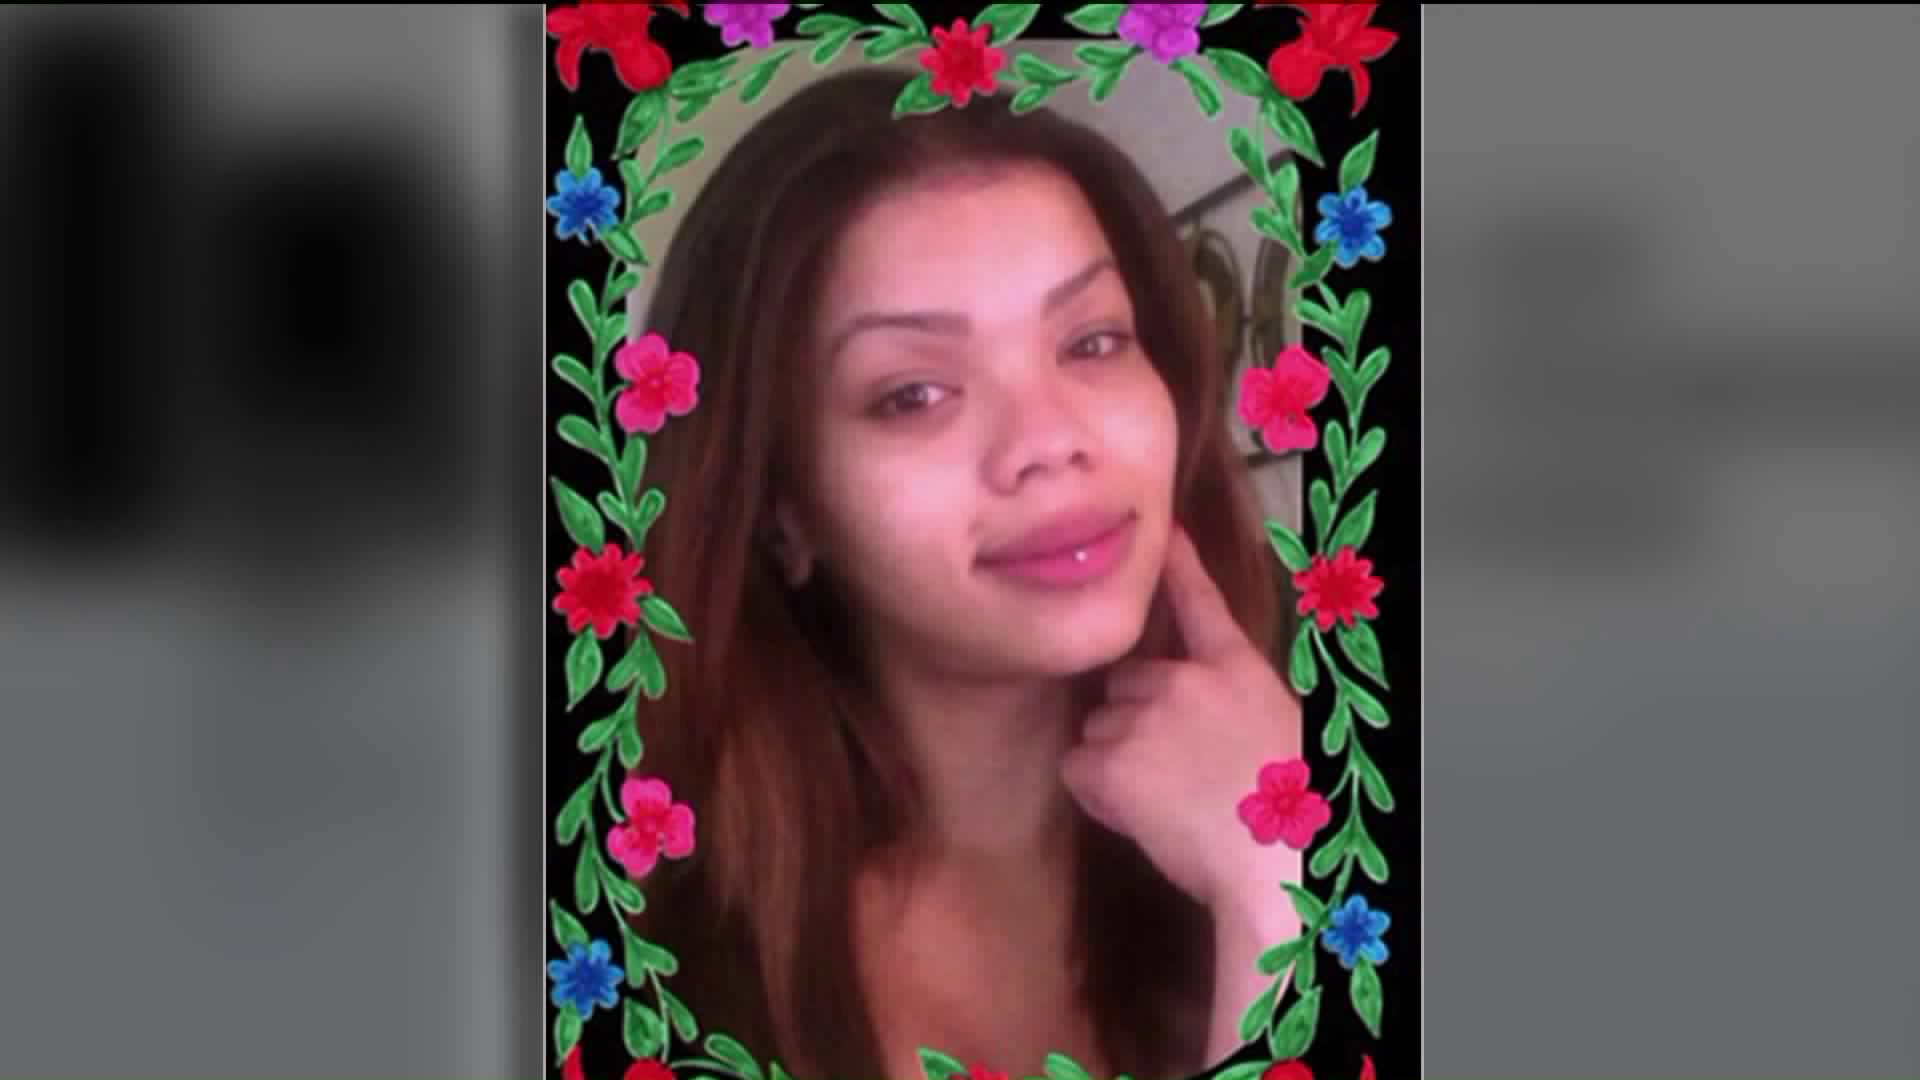 She was sent to Rikers Island because she couldn't pay $500 bail. Now, she'sdead